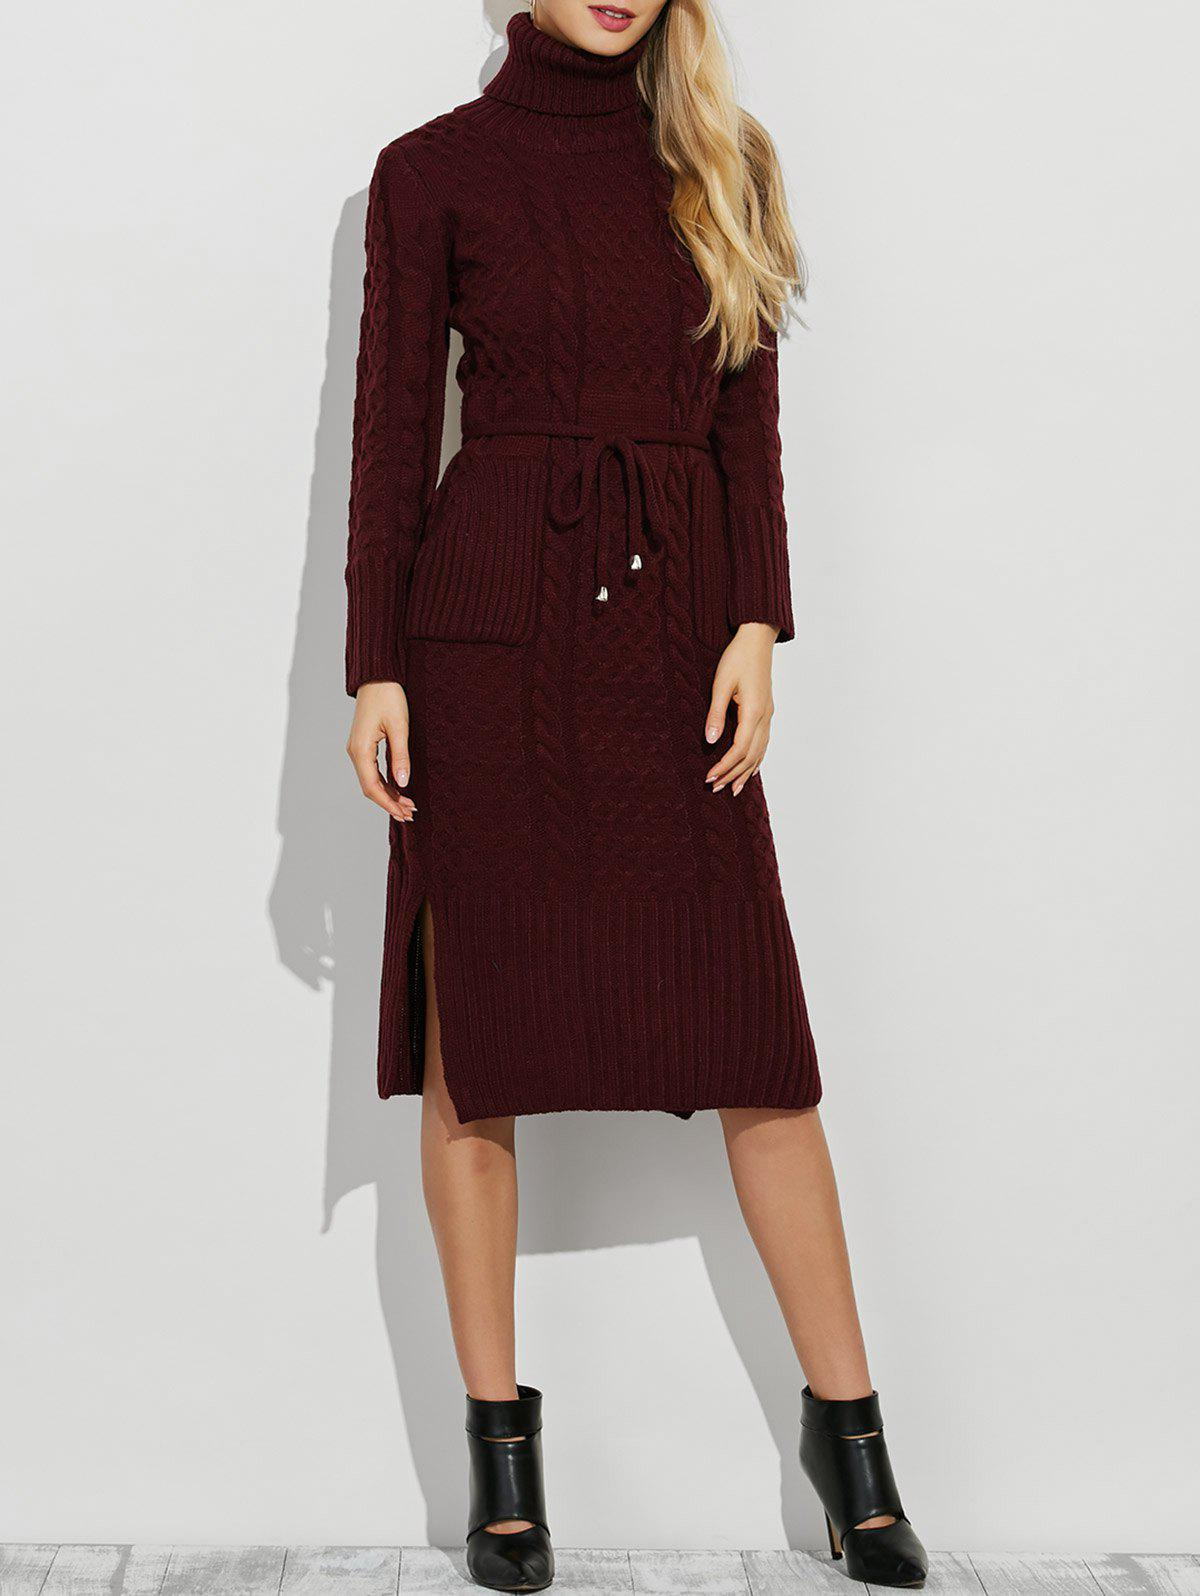 Turtleneck Side Slit Belted Long Sleeve Jumper Dress - BURGUNDY ONE SIZE